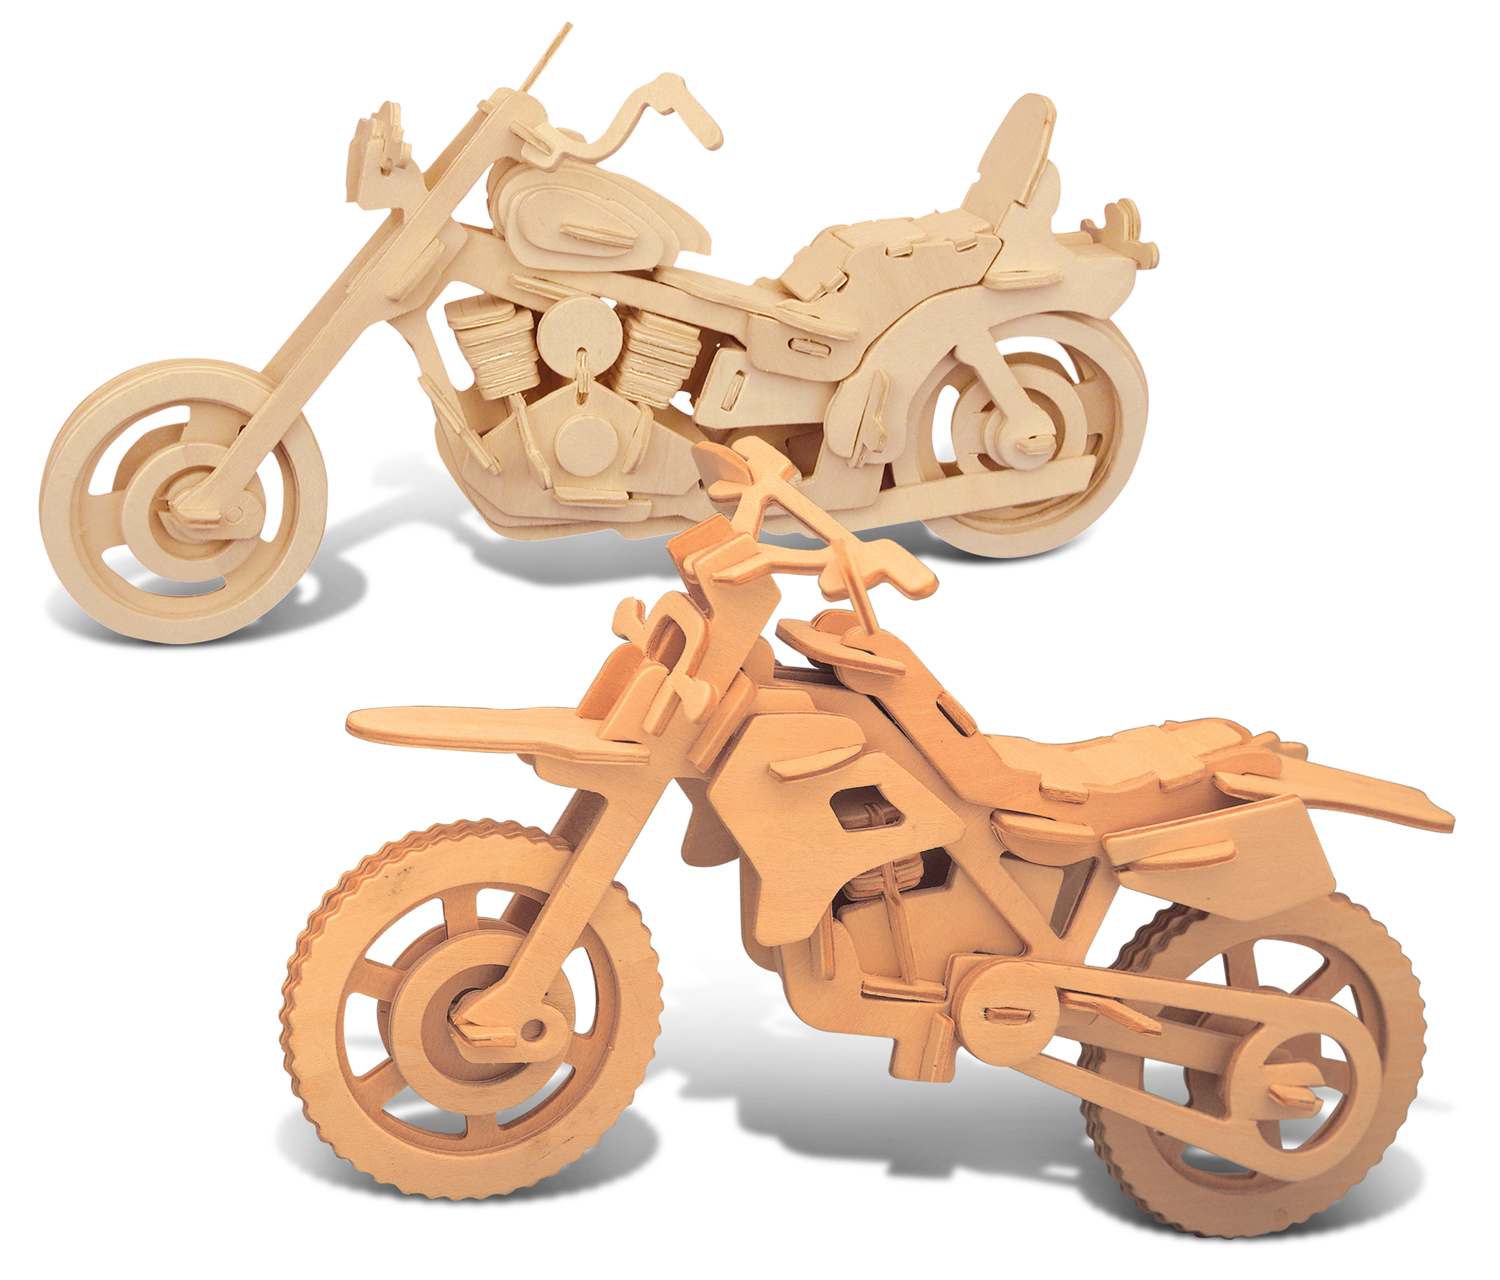 Puzzled Dirt Bike and Motorcycle Wooden 3D Puzzle Construction Kit by Puzzled Inc